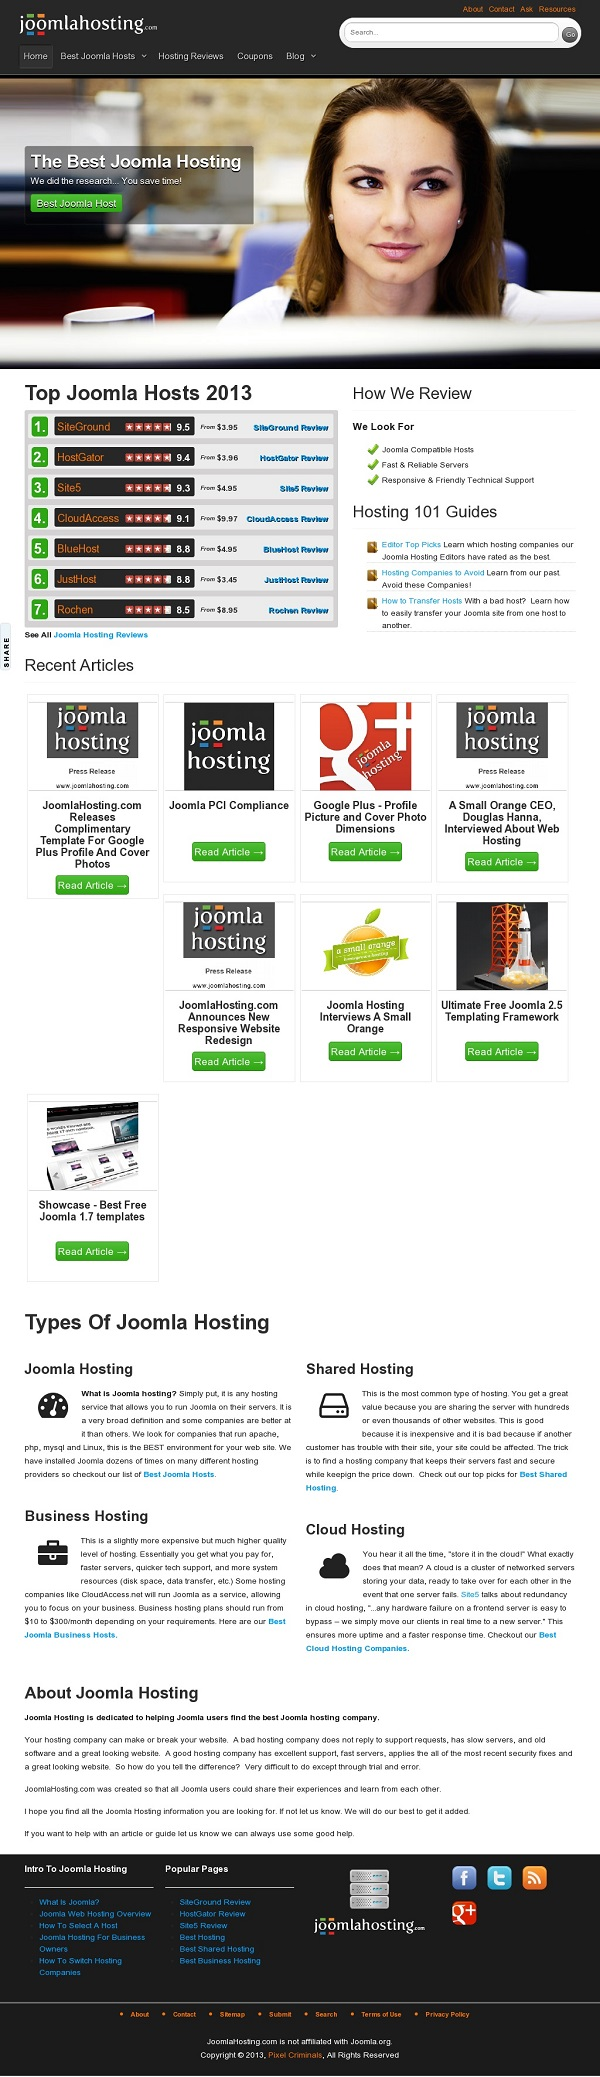 Joomla Host Reviews | Latest Customer Reviews and Ratings